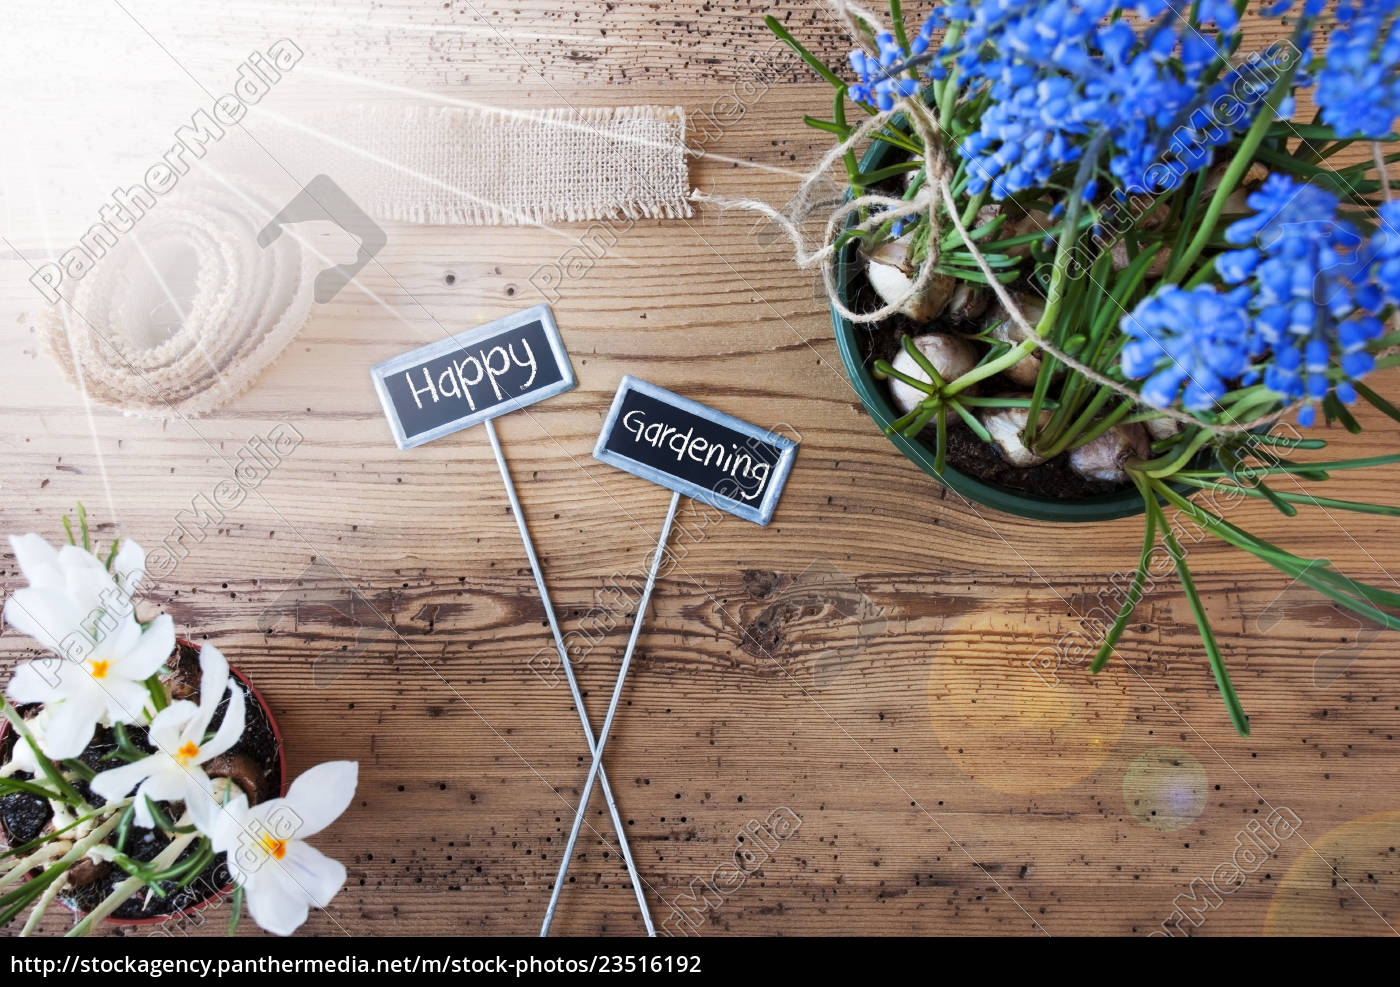 sunny, flowers, , signs, , text, happy, gardening - 23516192